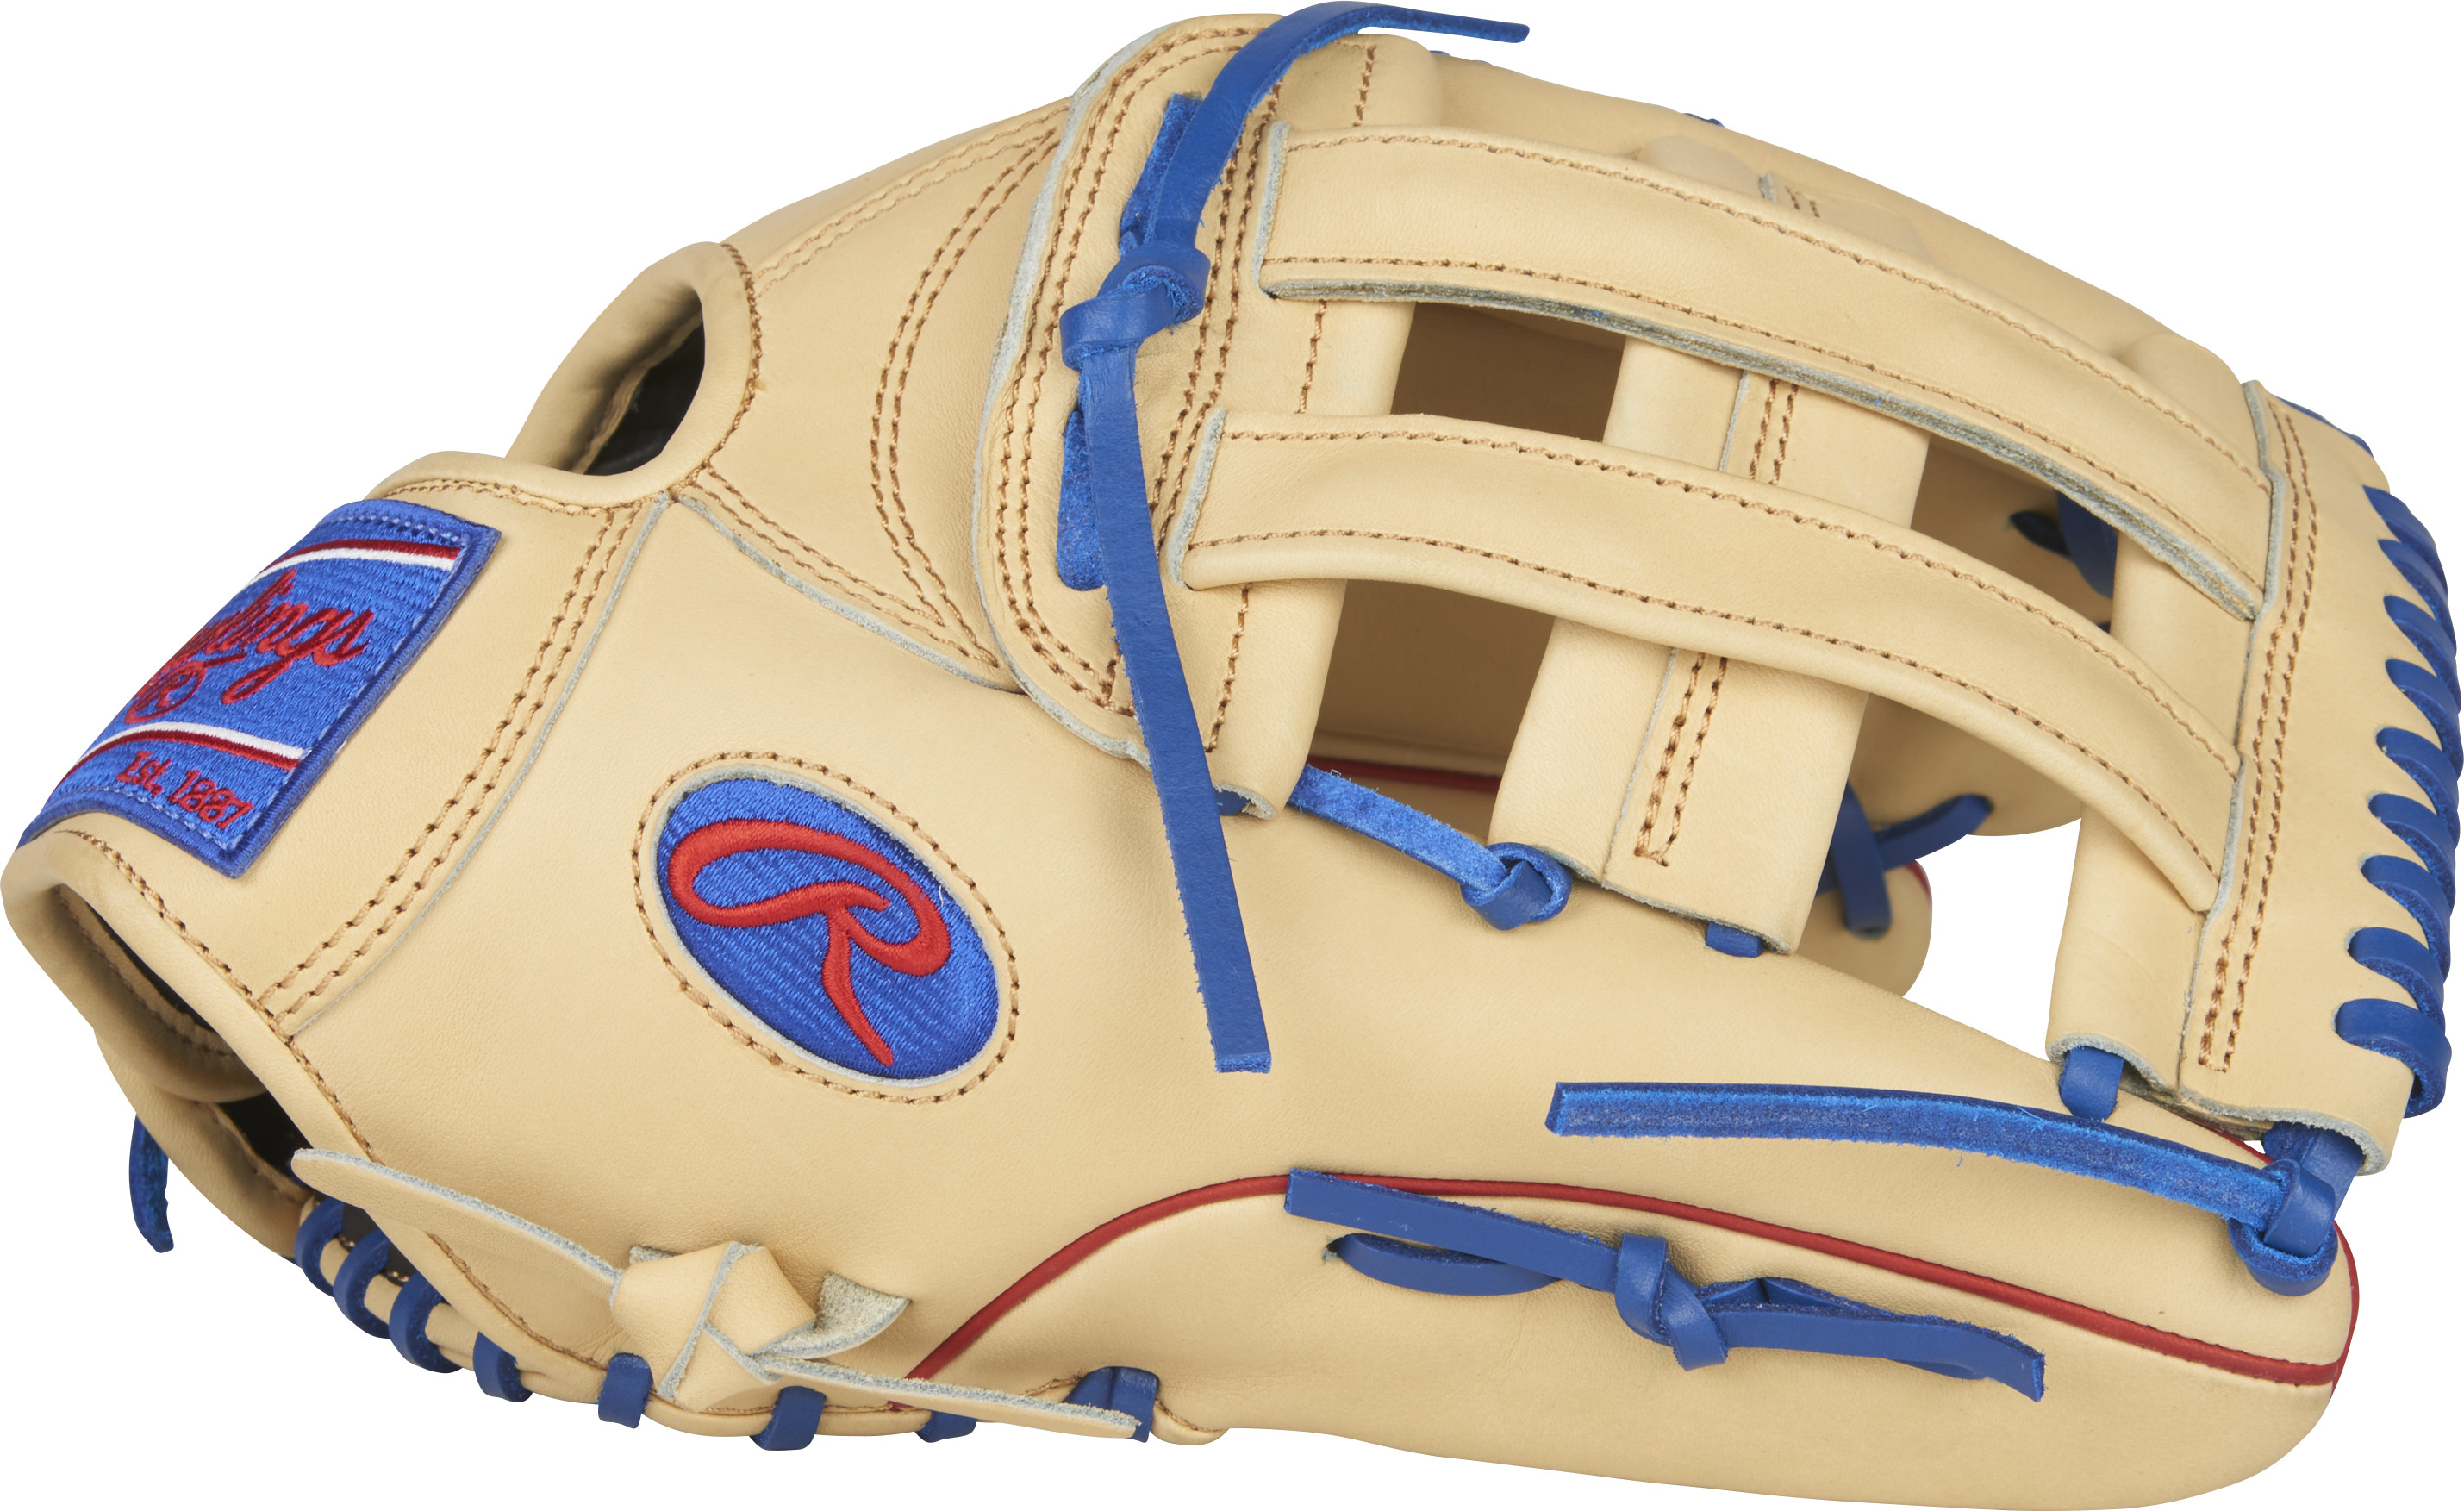 http://www.bestbatdeals.com/images/gloves/rawlings/PRO3039-6CCR-3.jpg